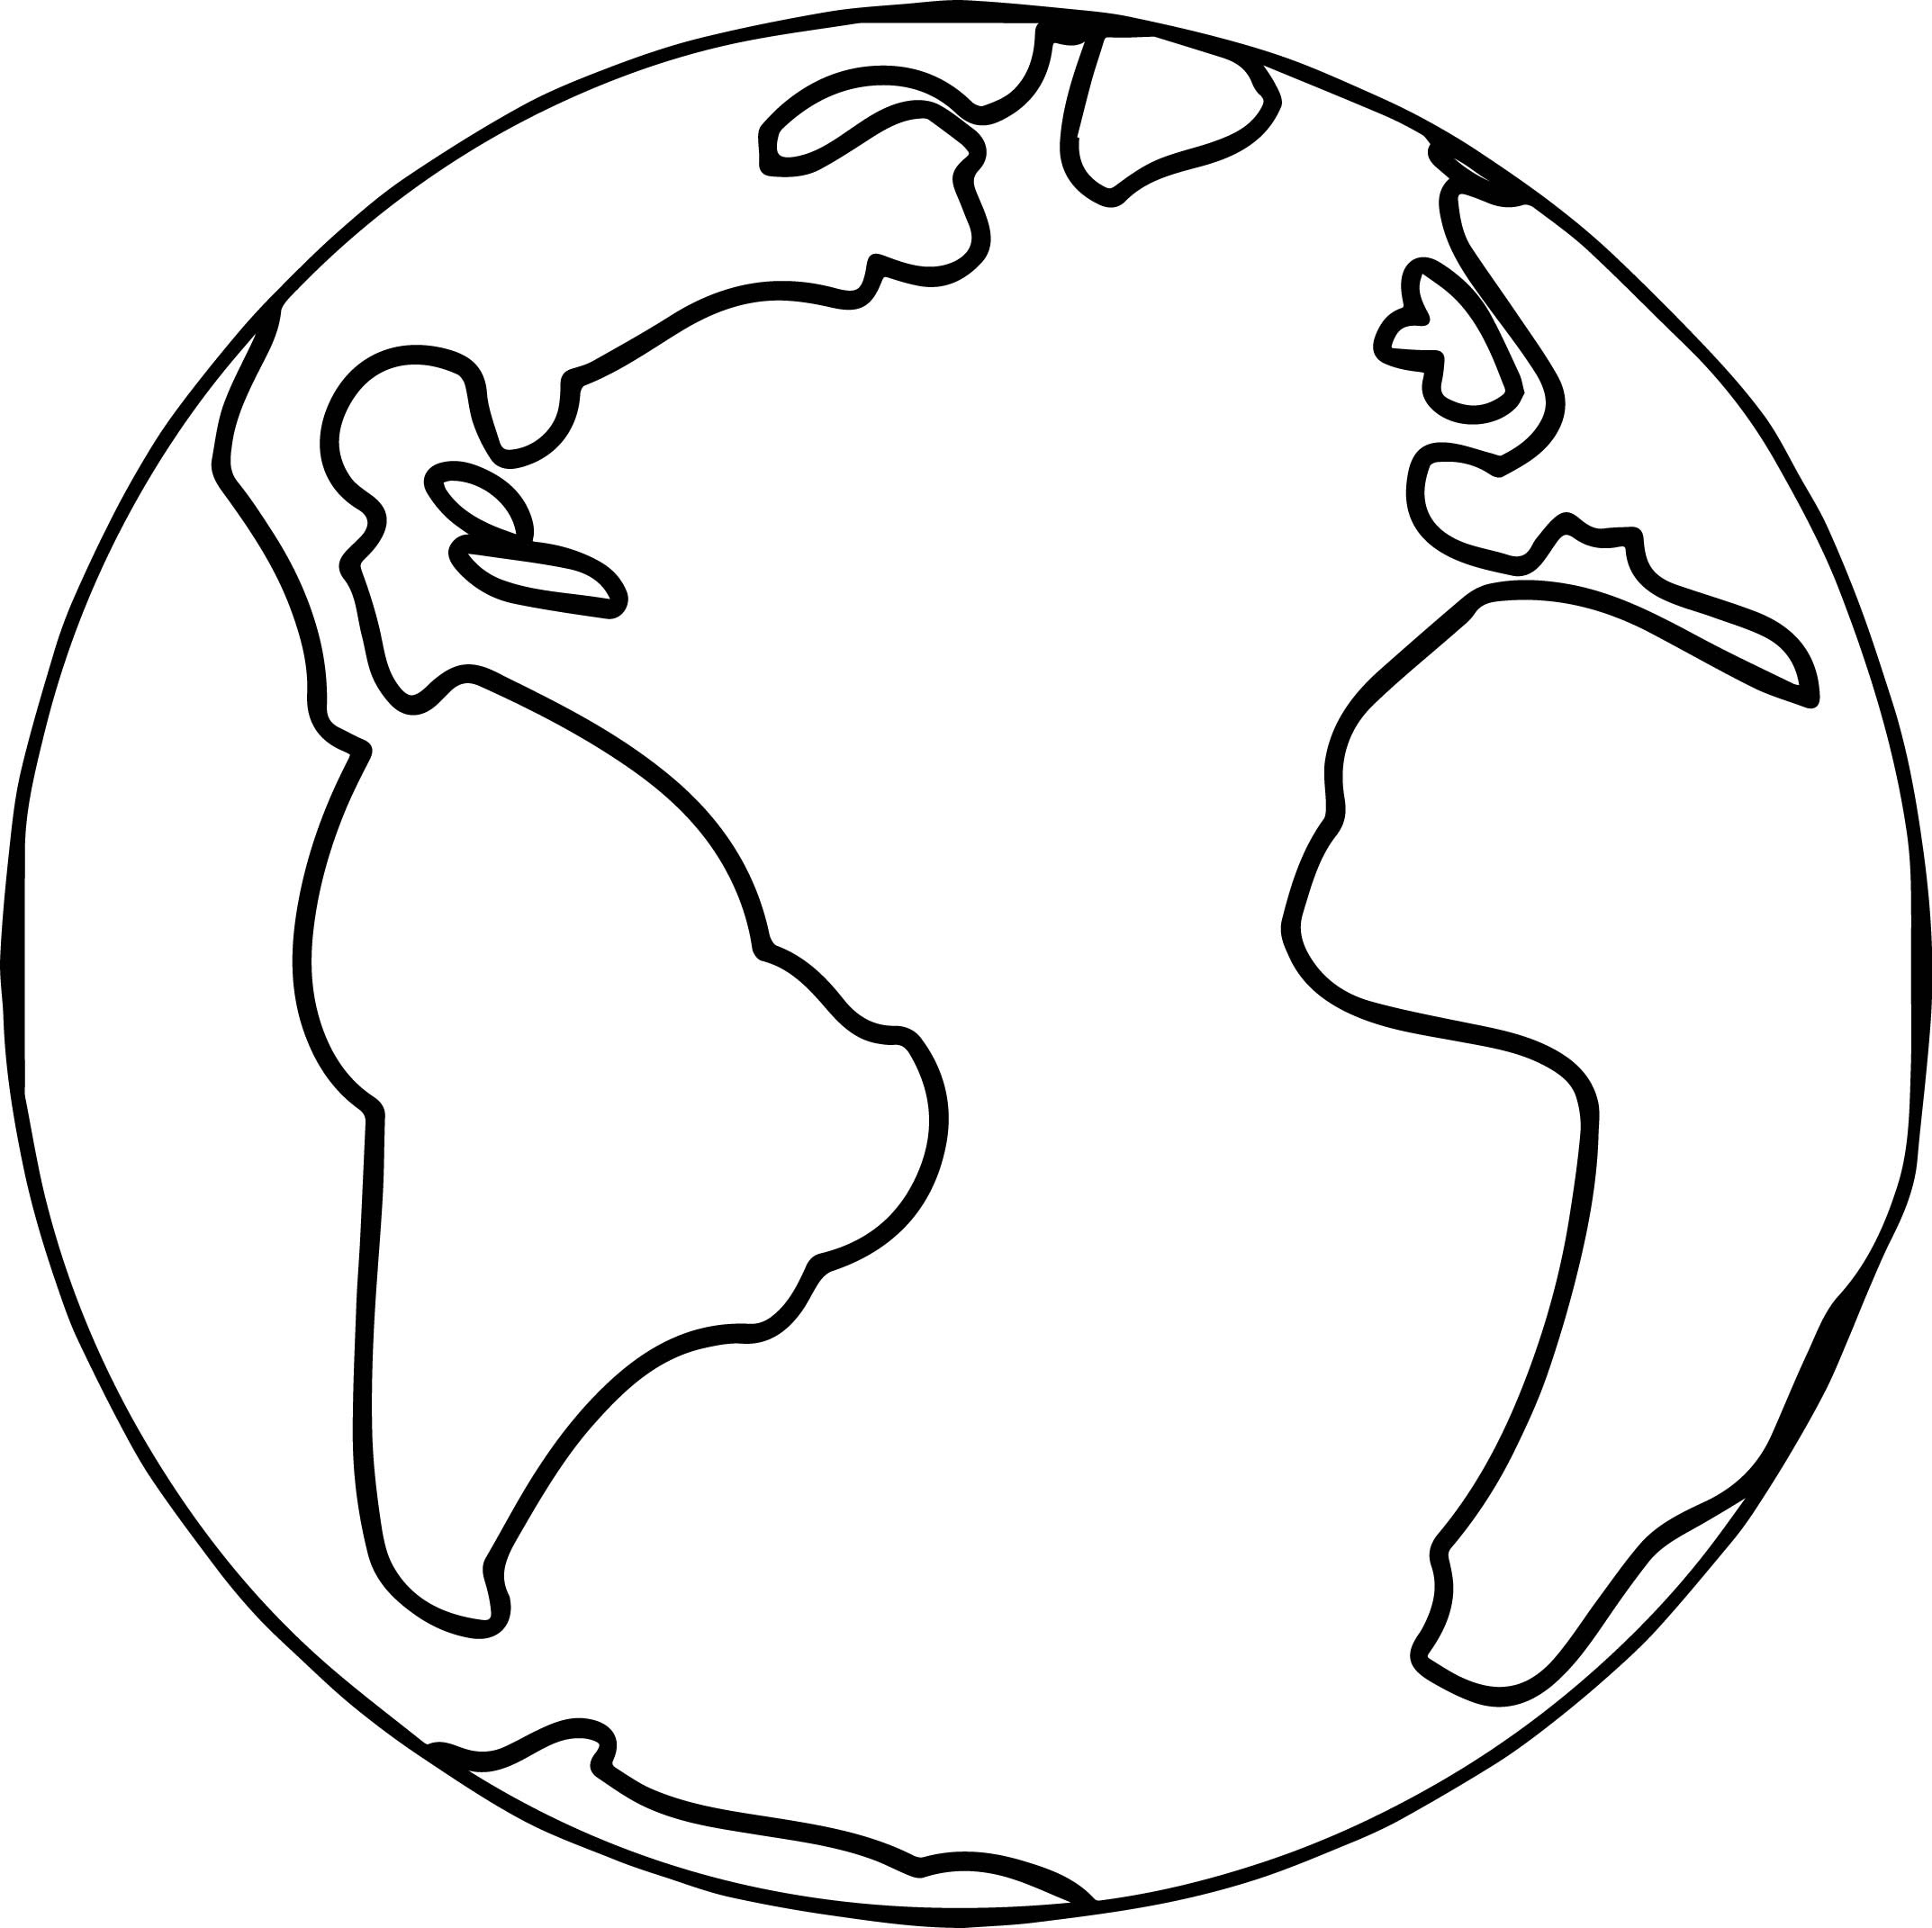 Earth Globe World Coloring Page Wecoloringpage.com - Coloring Pages